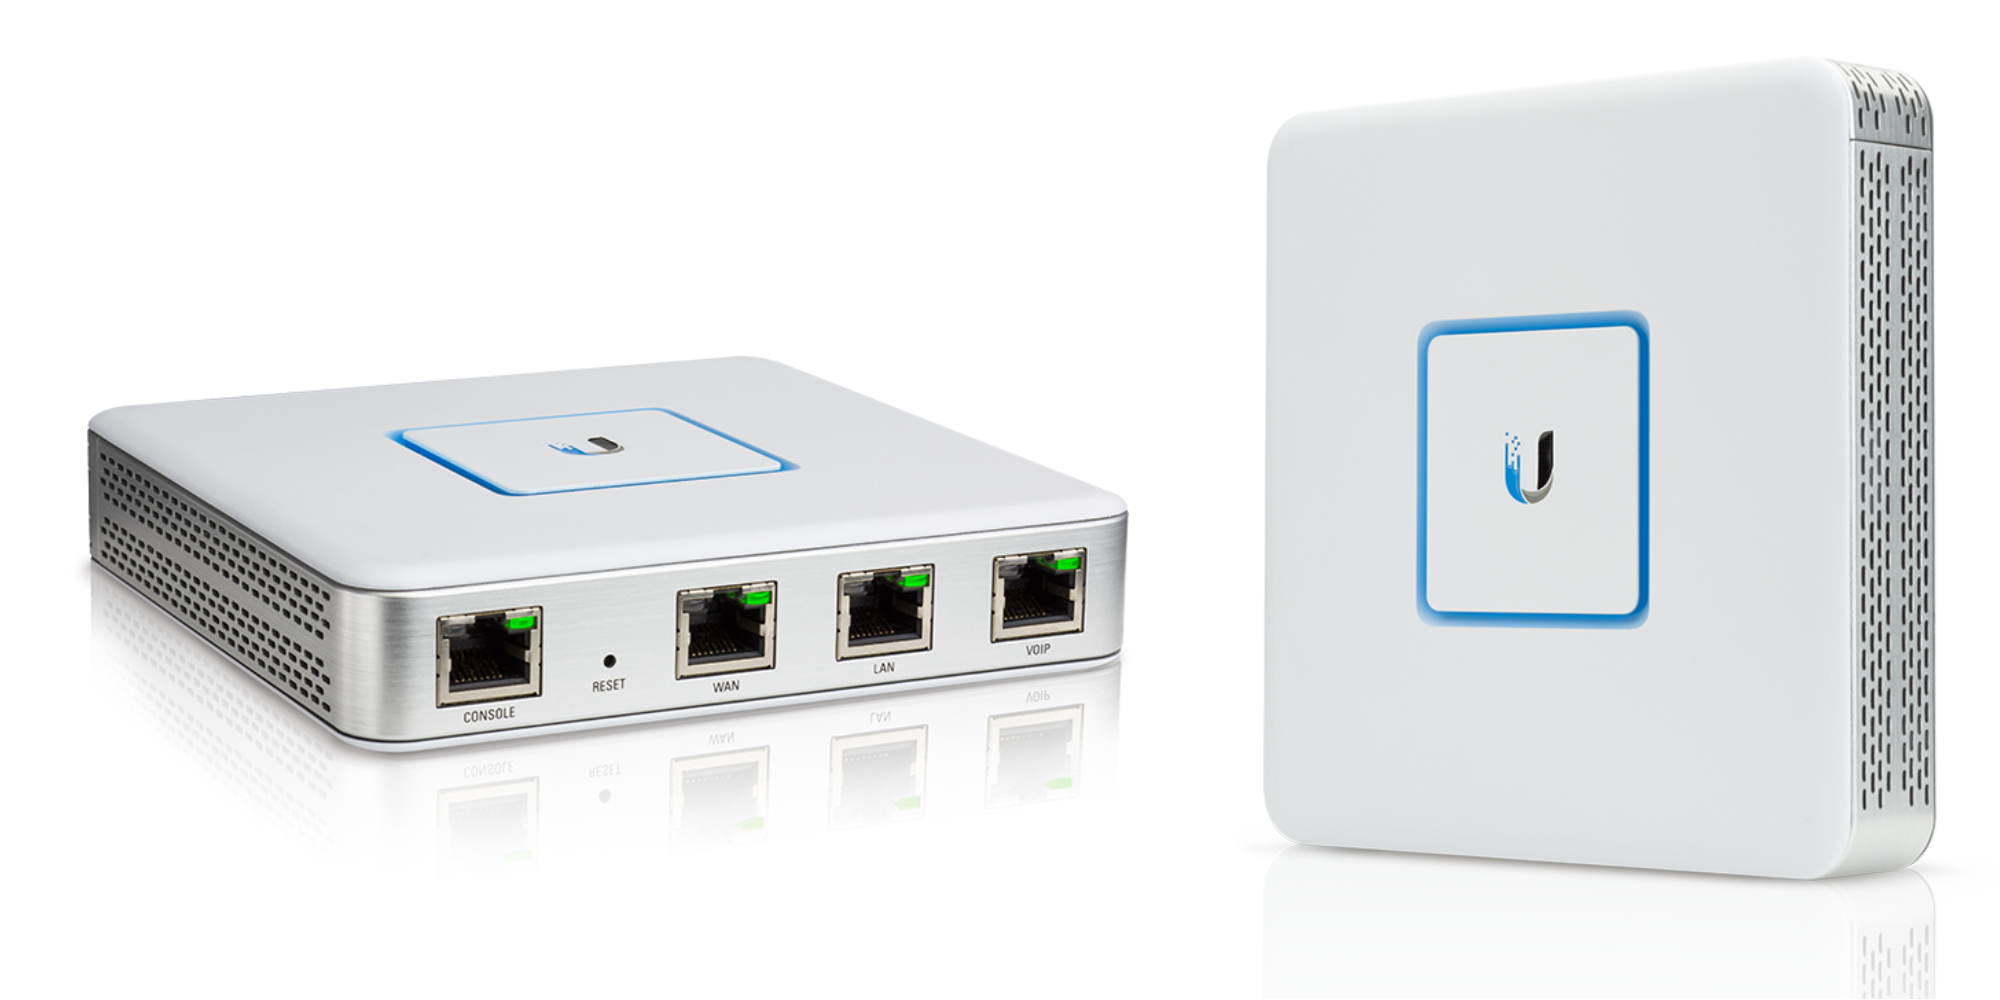 UniFi Getting Started with Ubiquiti's line of prosumer gear